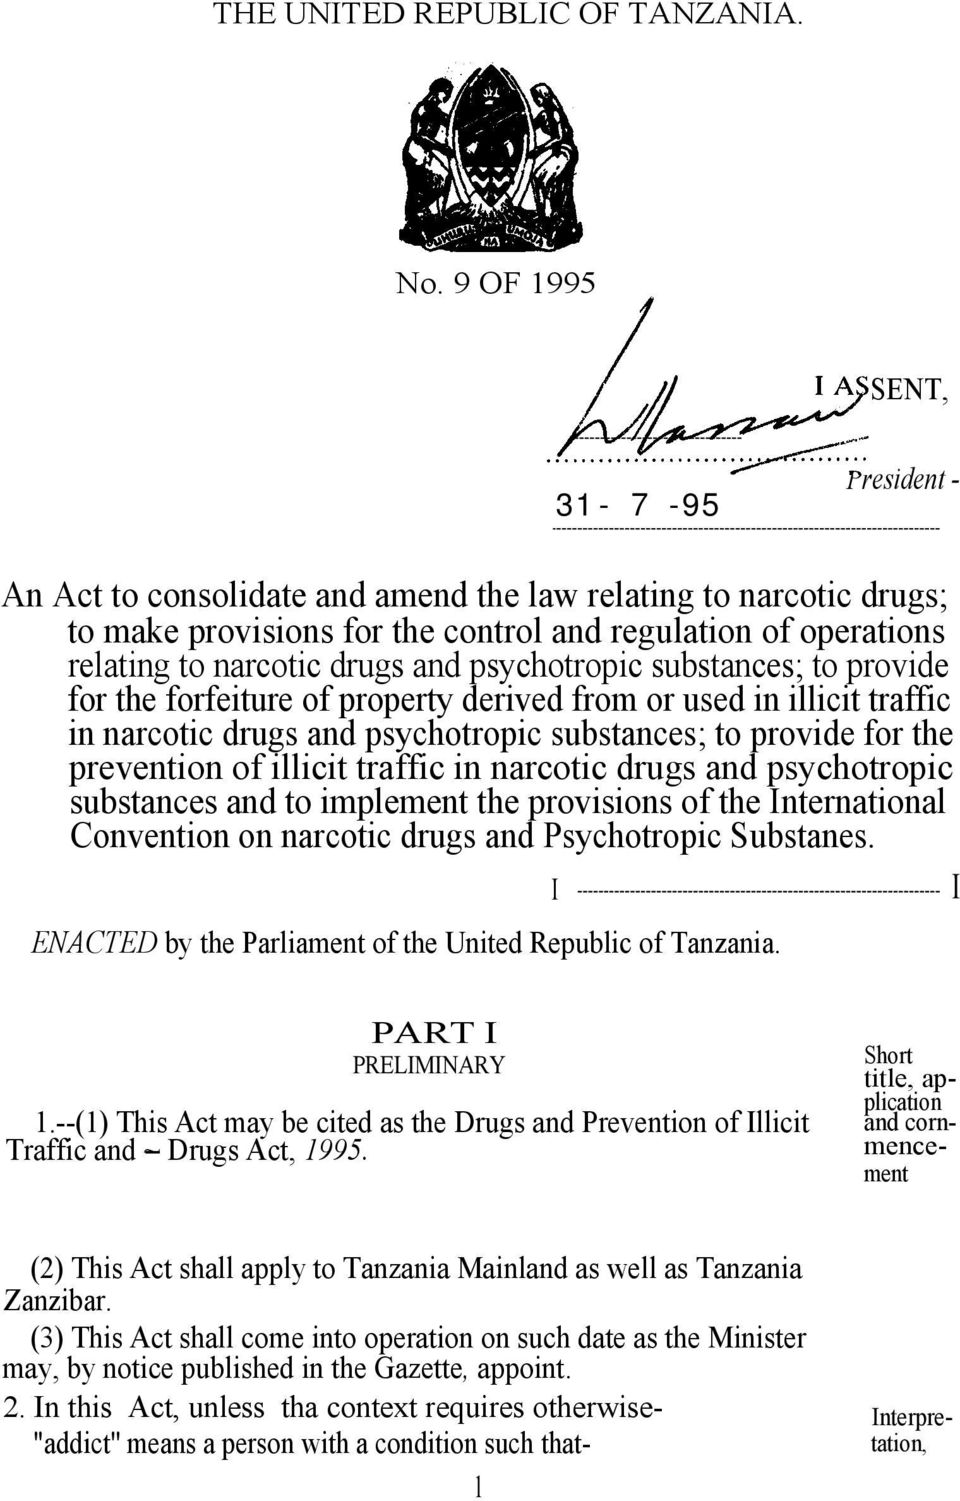 and psychotropic substances; to provide for the forfeiture of property derived from or used in illicit traffic in narcotic drugs and psychotropic substances; to provide for the prevention of illicit